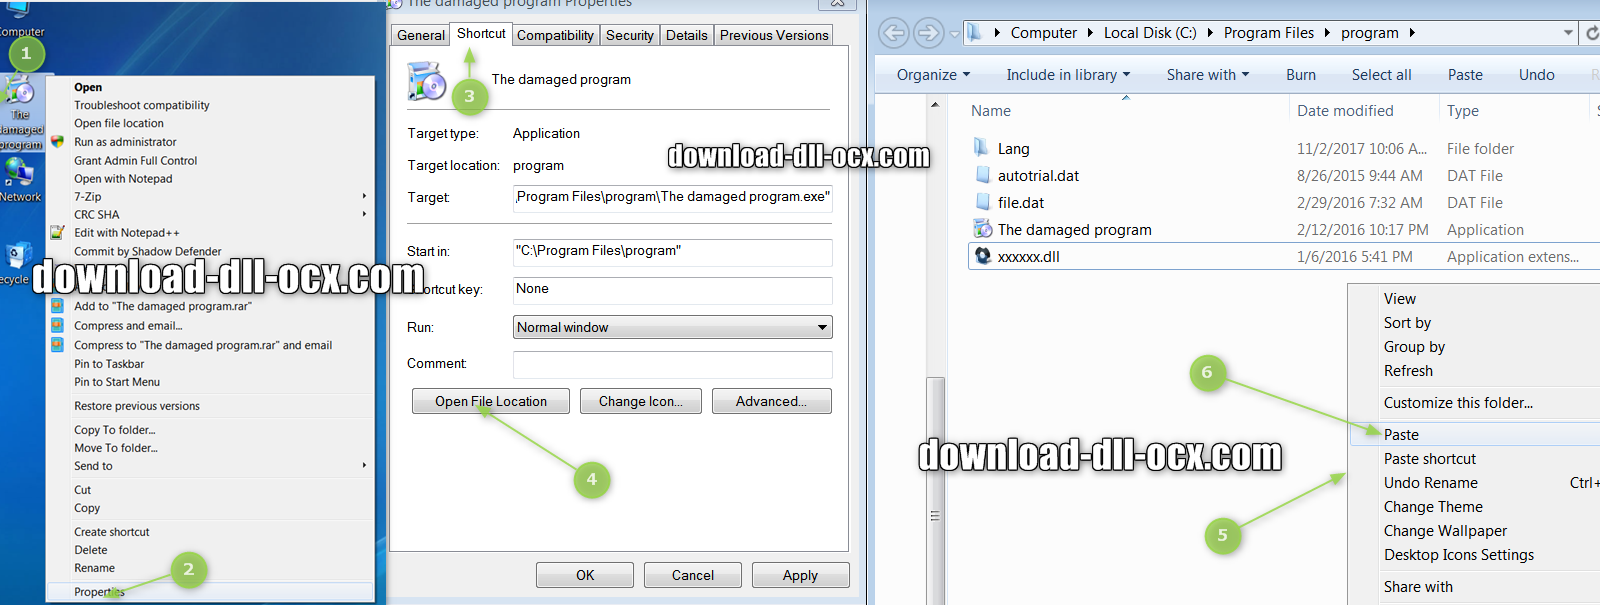 how to install opengldrv.dll file? for fix missing